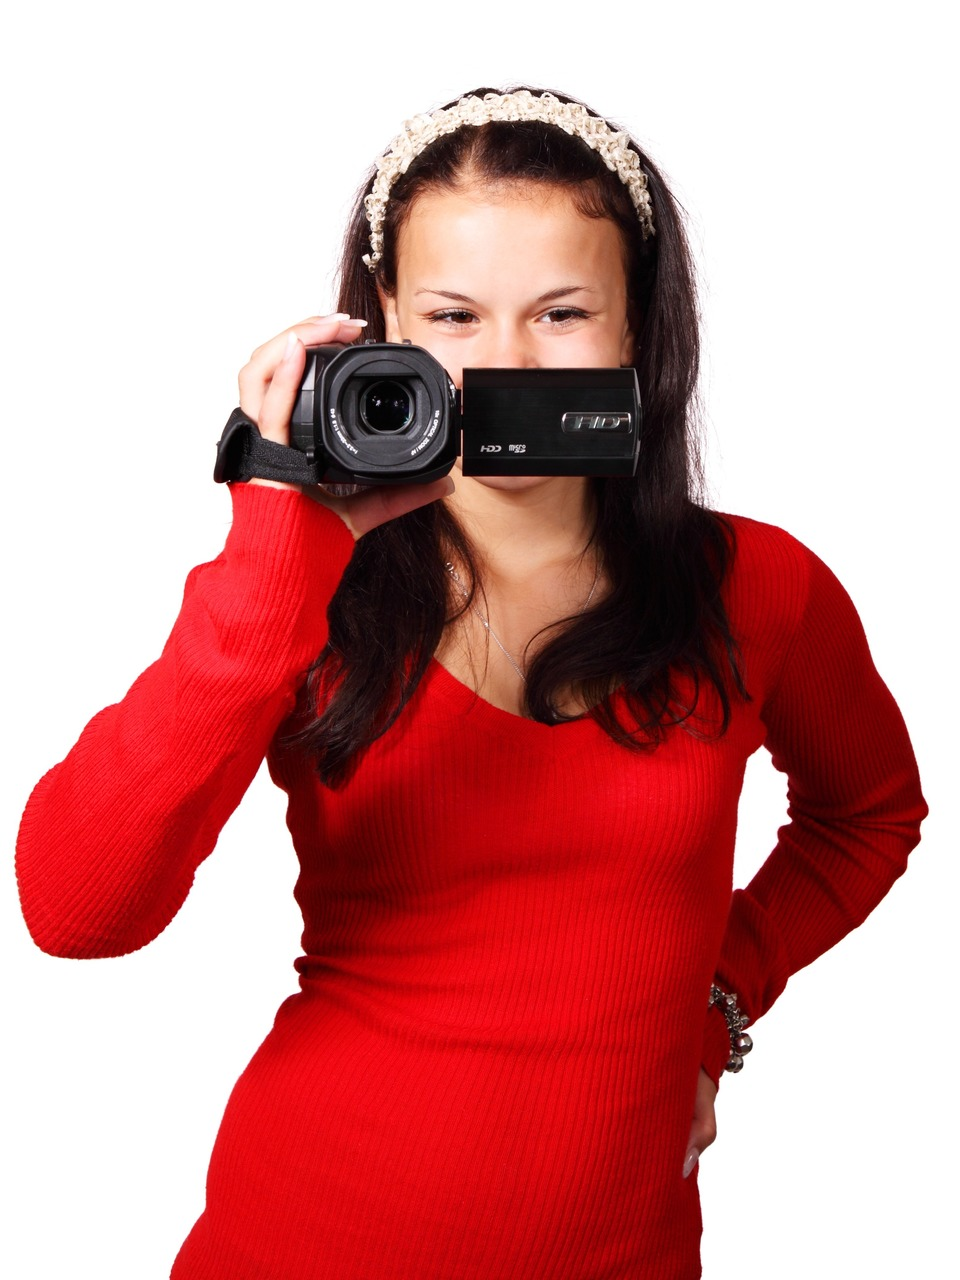 Woman with video camera 18738220161216 10512 1isils7